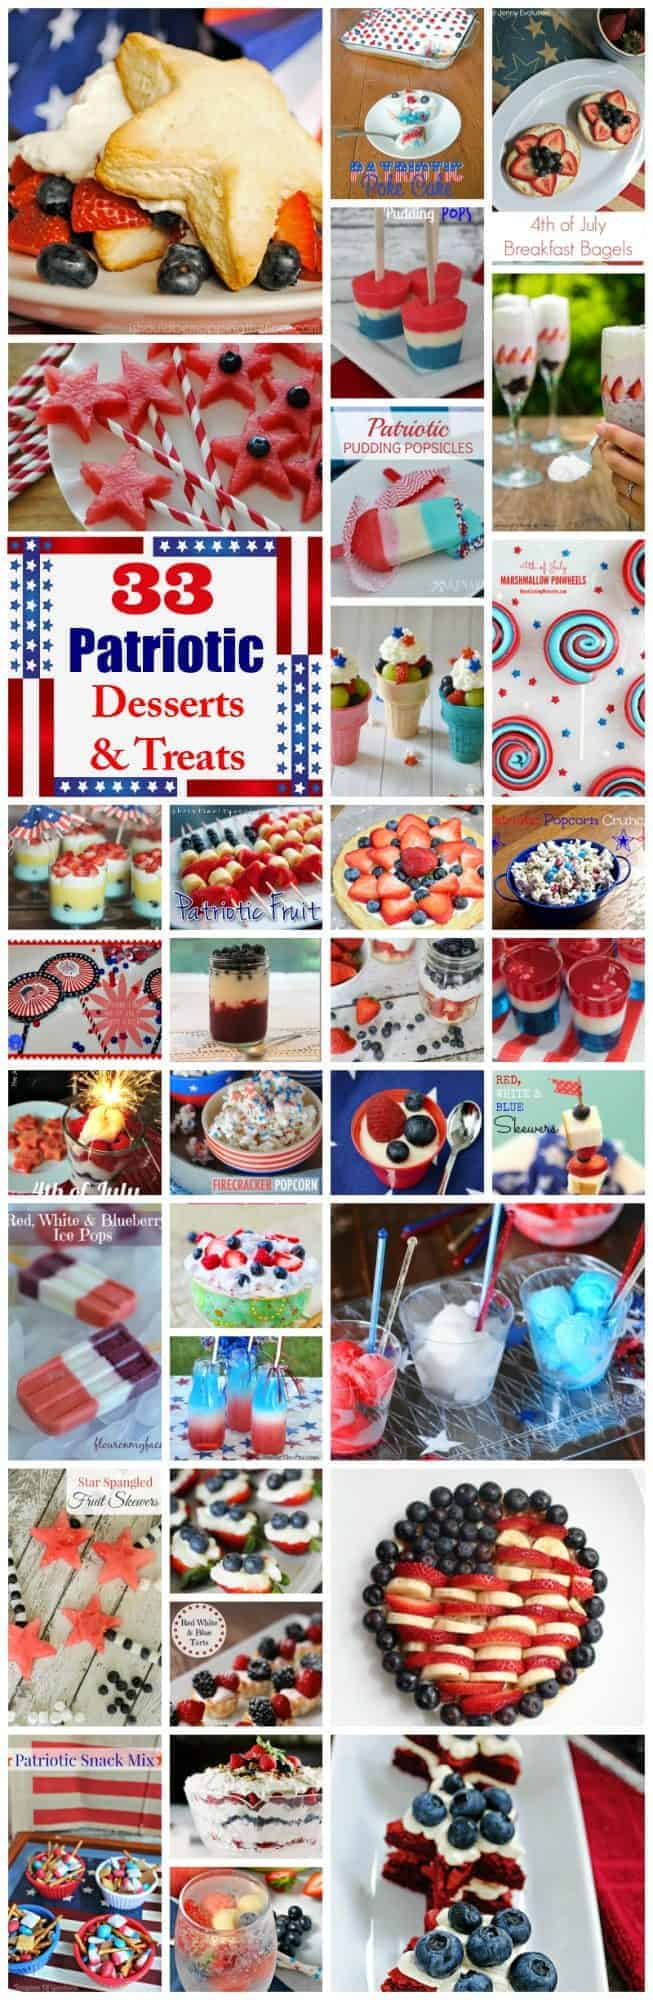 33 fabulously tasty patriotic desserts and treats. These are perfect to serve at summer picnics or any time you're entertaining.